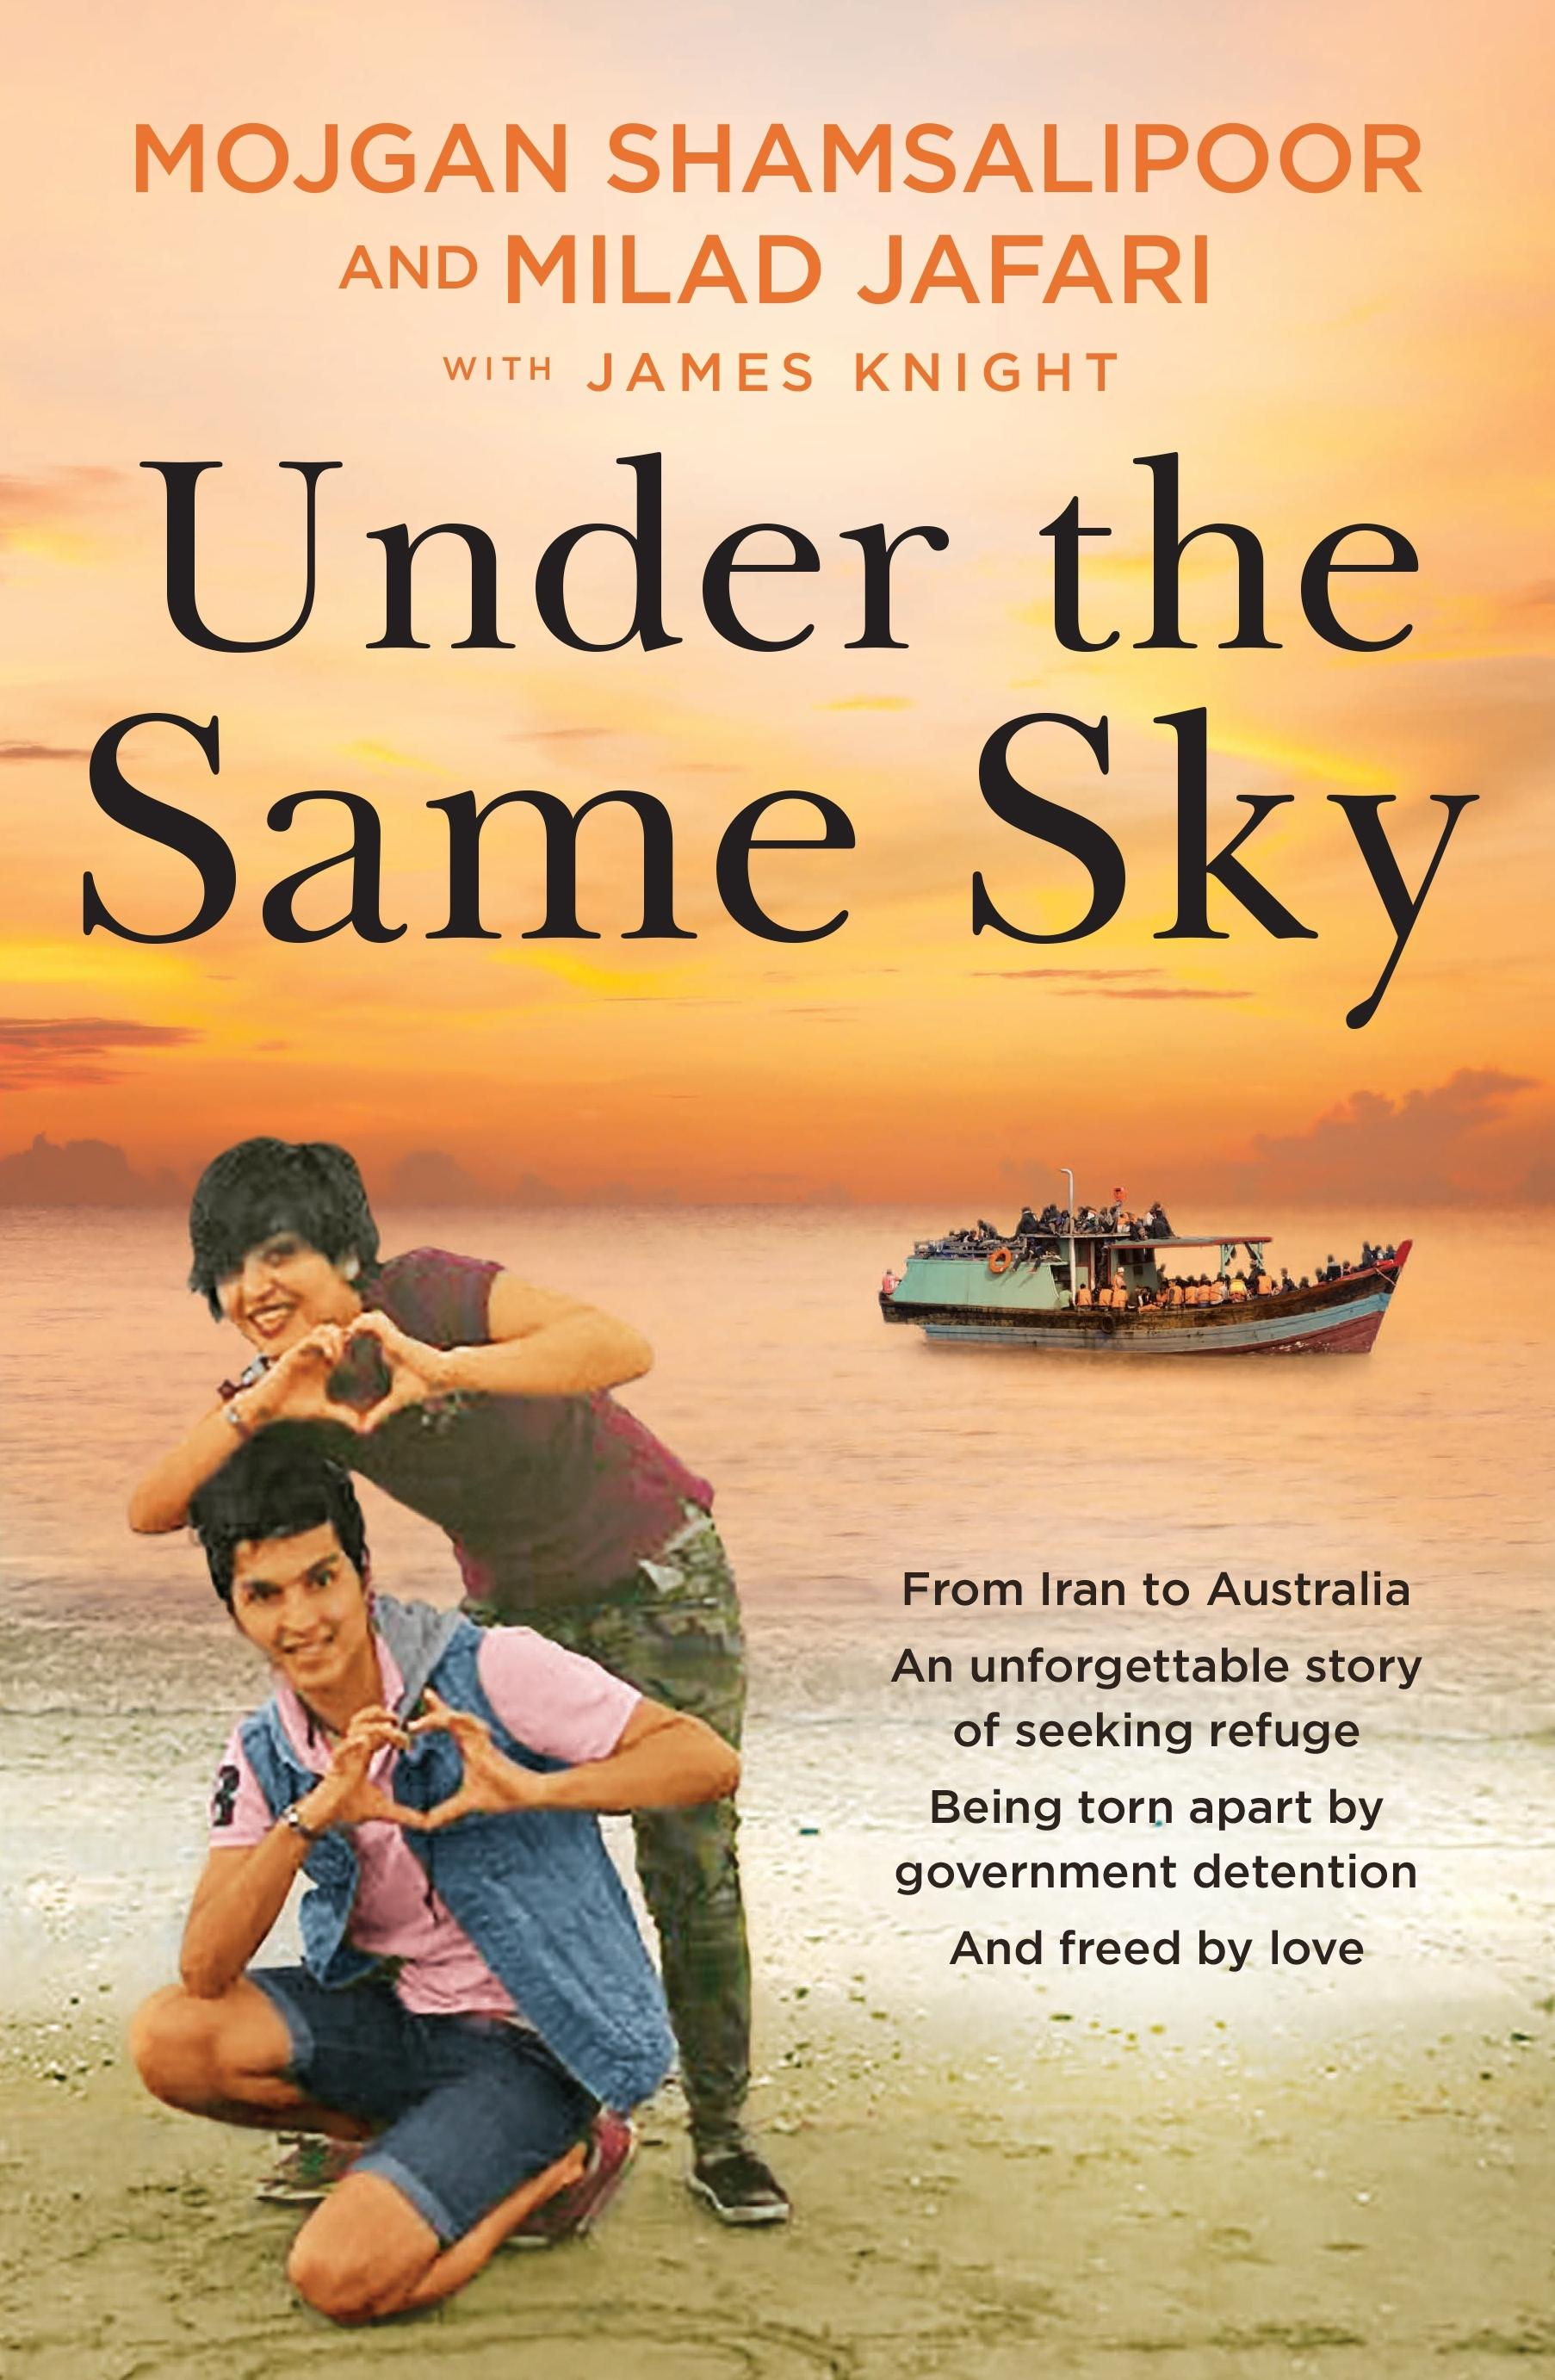 Under the Same Sky: From Iran to Australia, an unforgettable story of seeking refuge, being torn apart by government detention and freedbylove